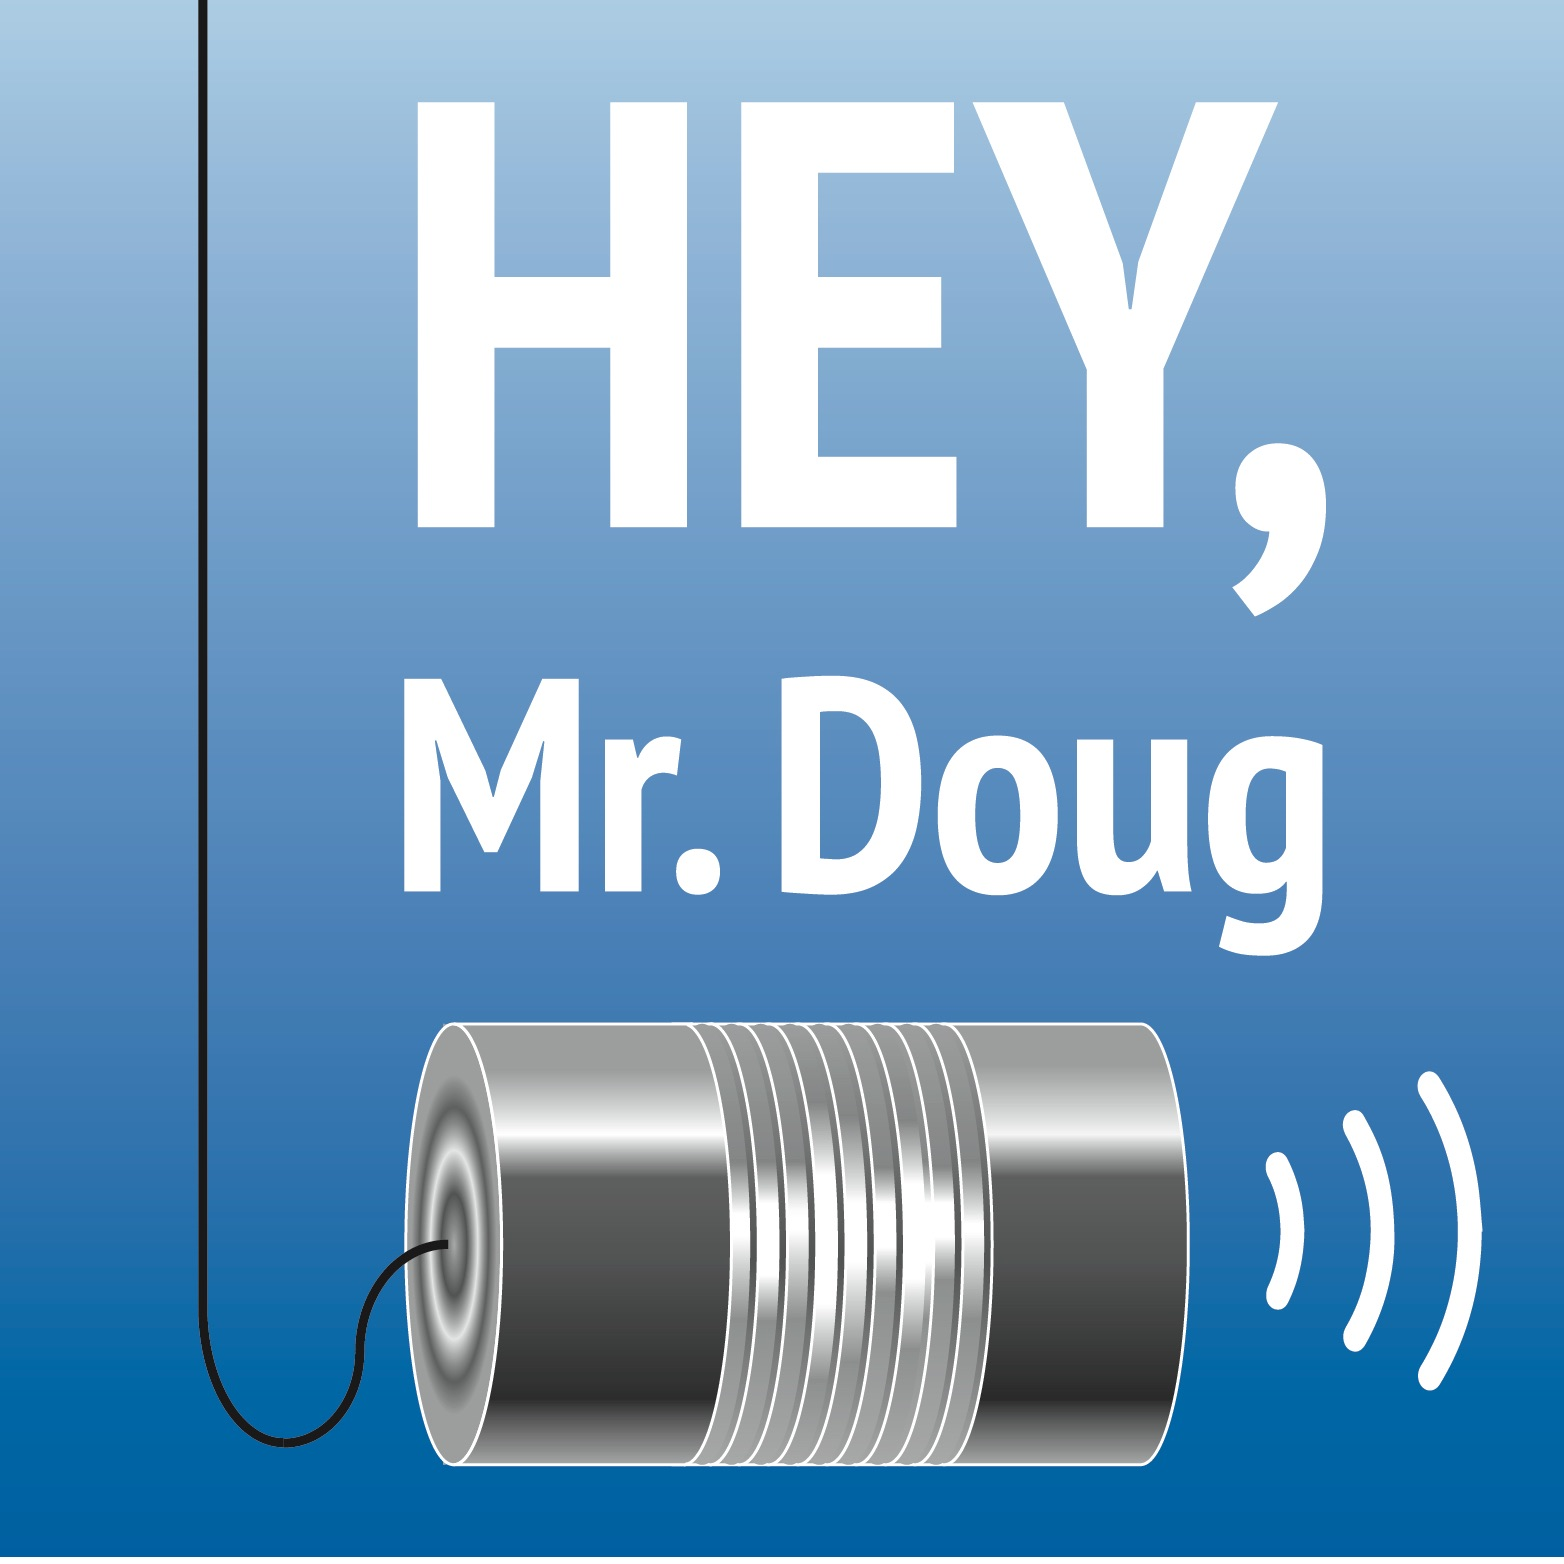 Hey, Mr. Doug